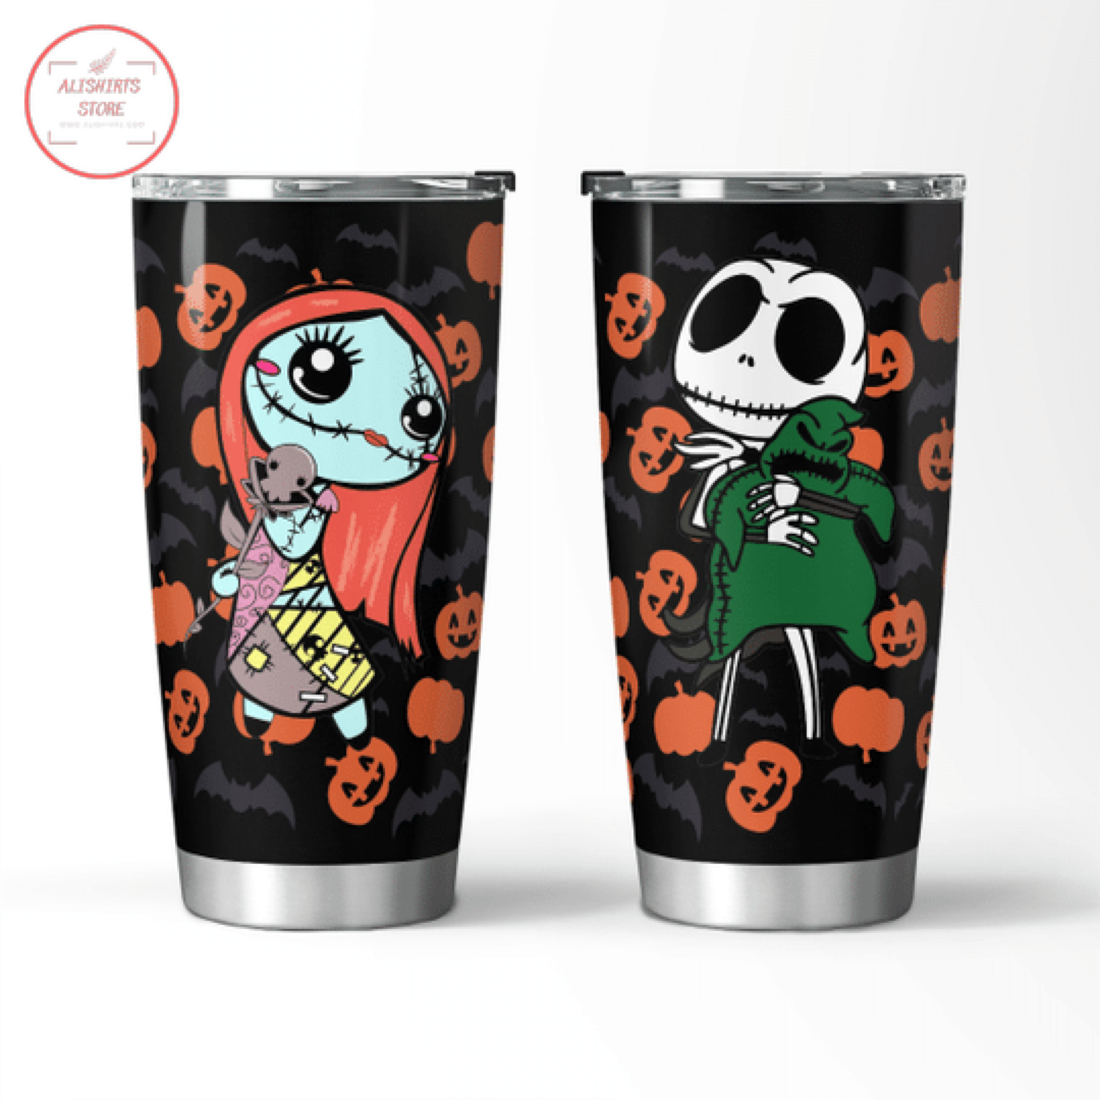 New Halloween Tumblers Just Arrived